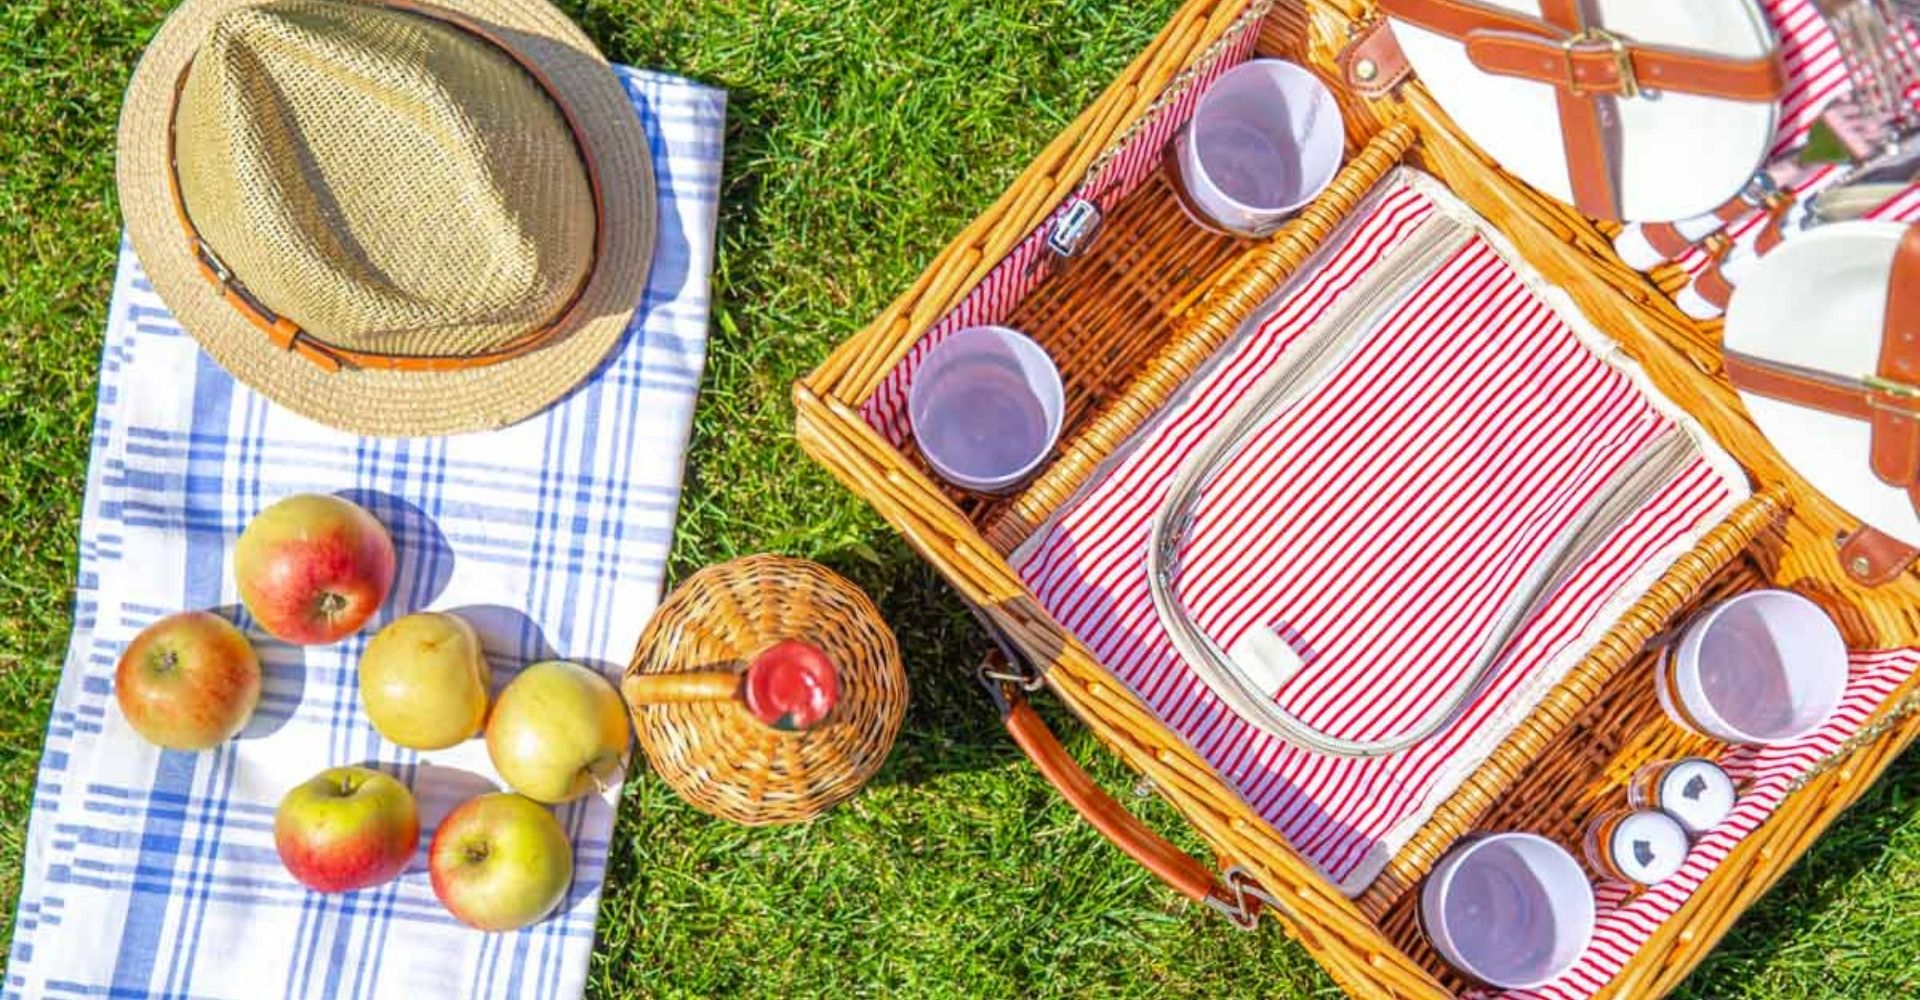 Picnic gear for a holiday